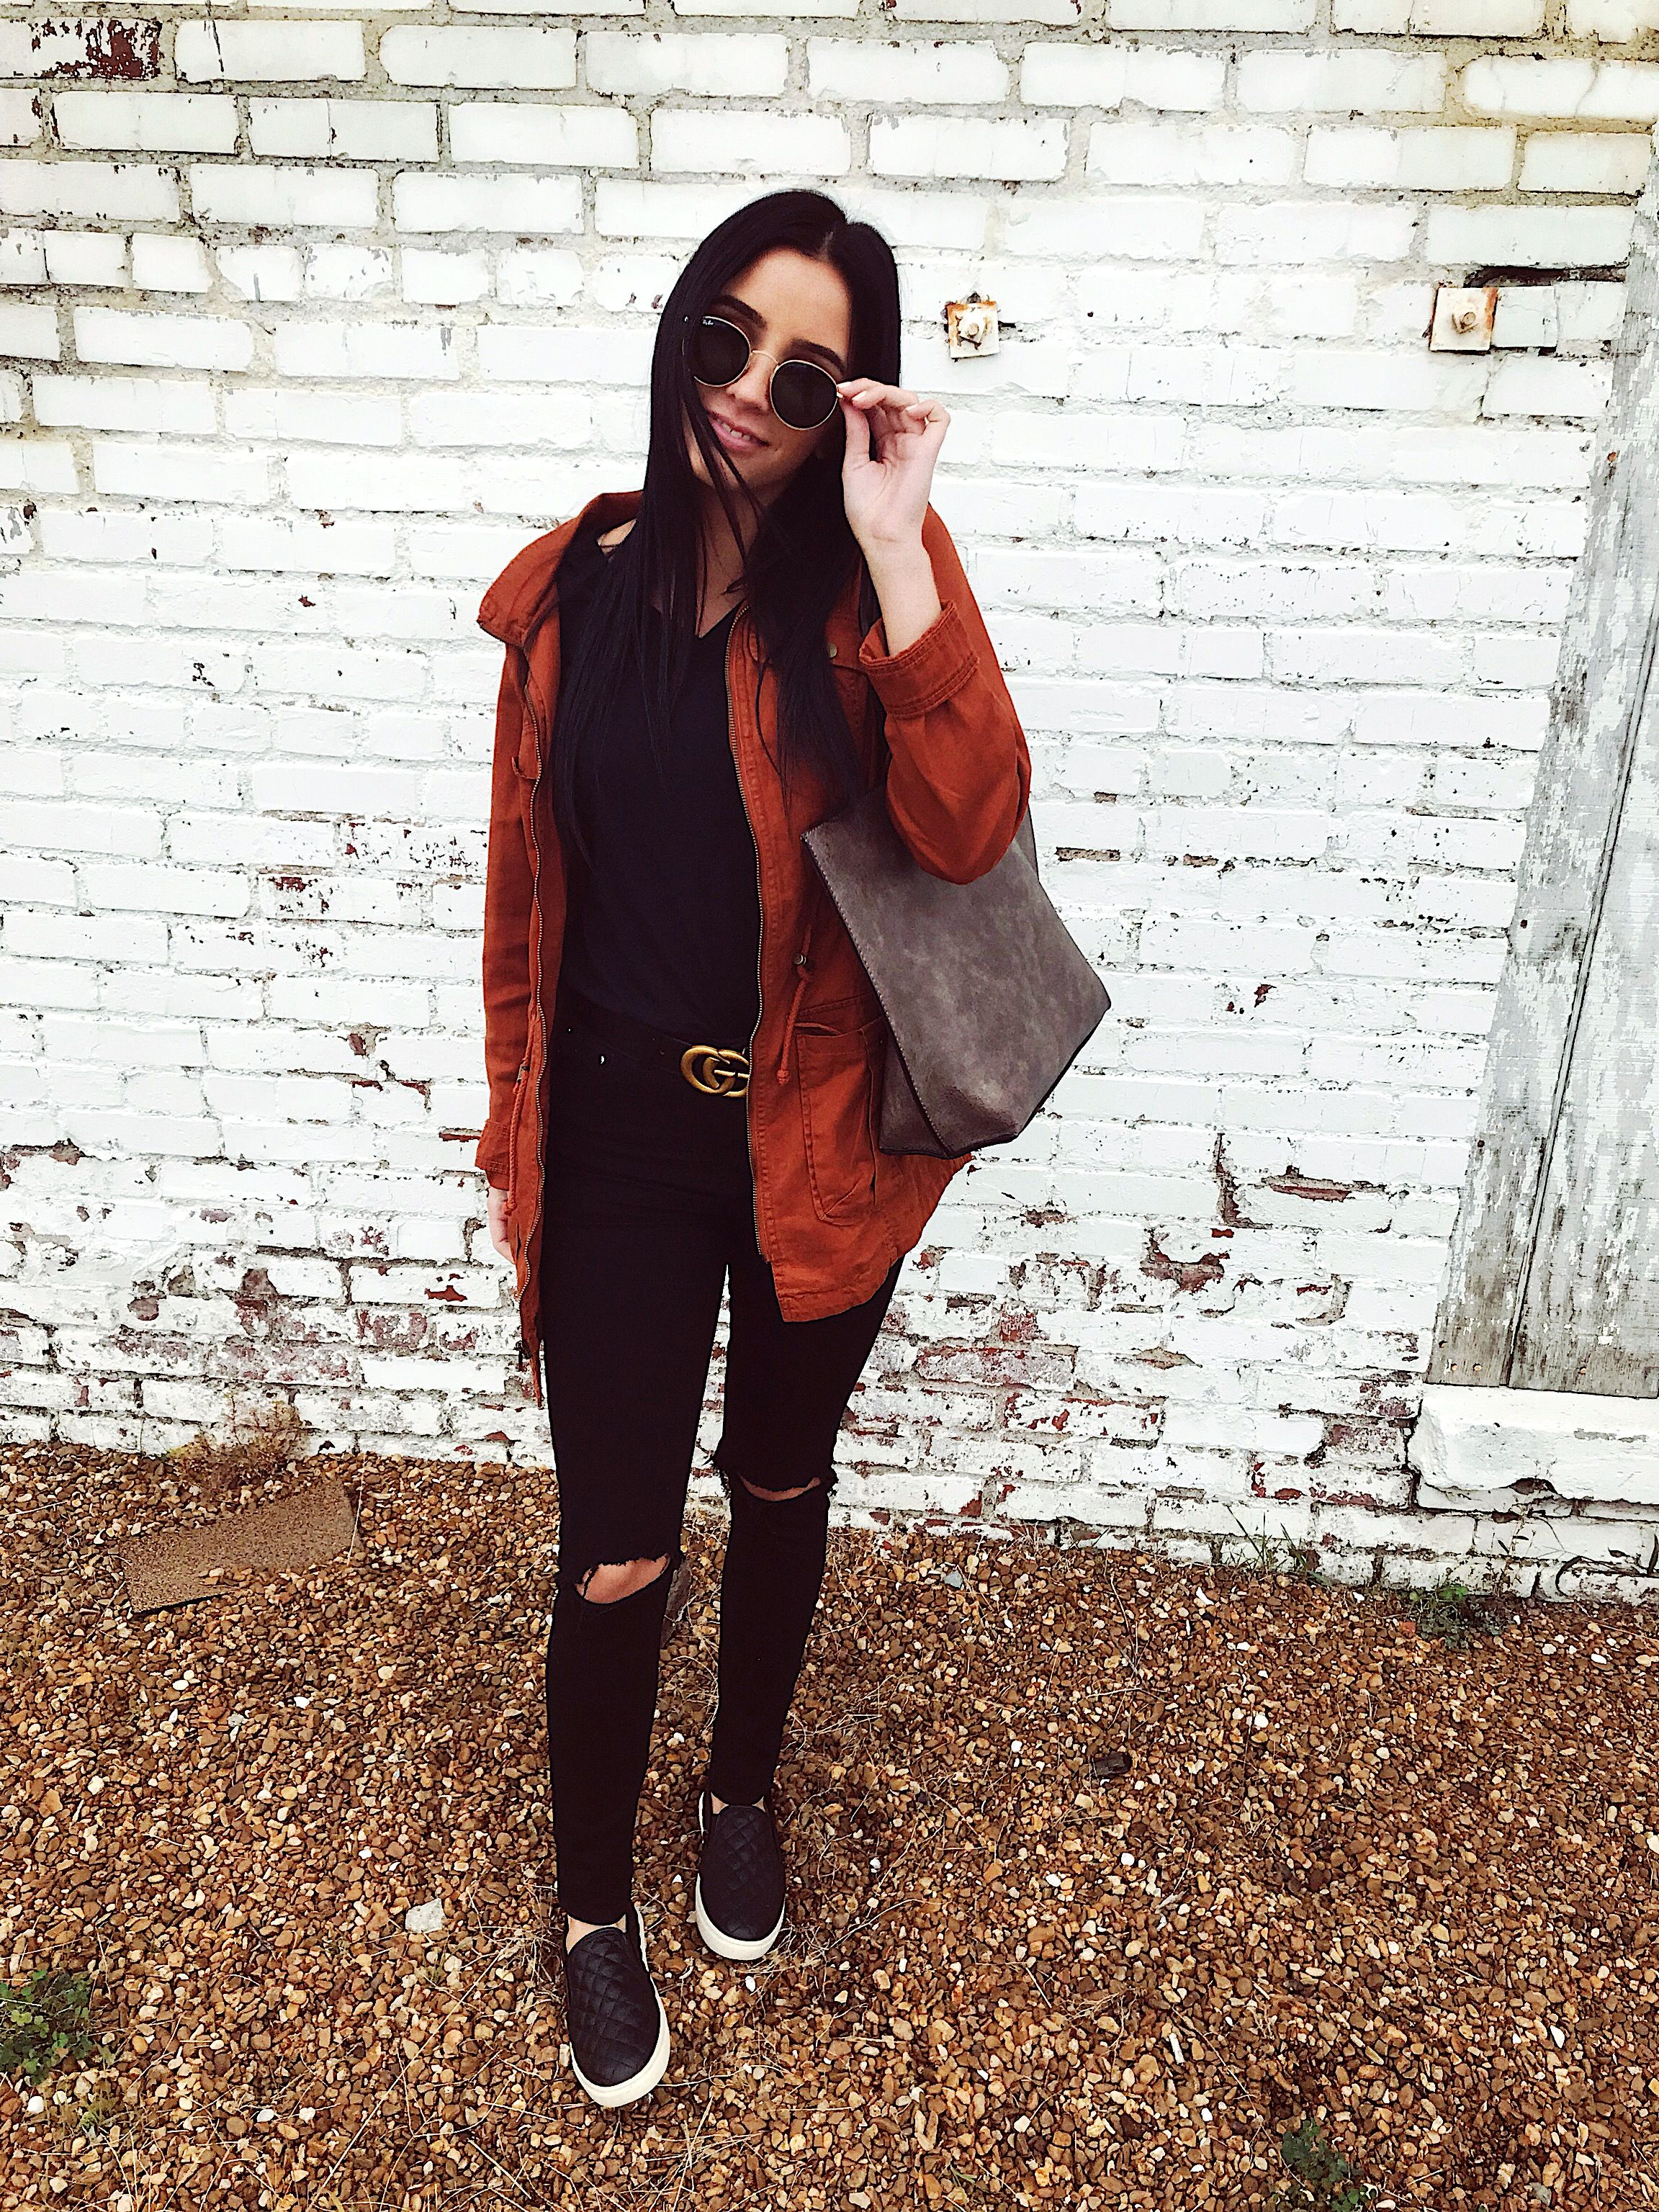 Jeans outfit fall, Fall outfits